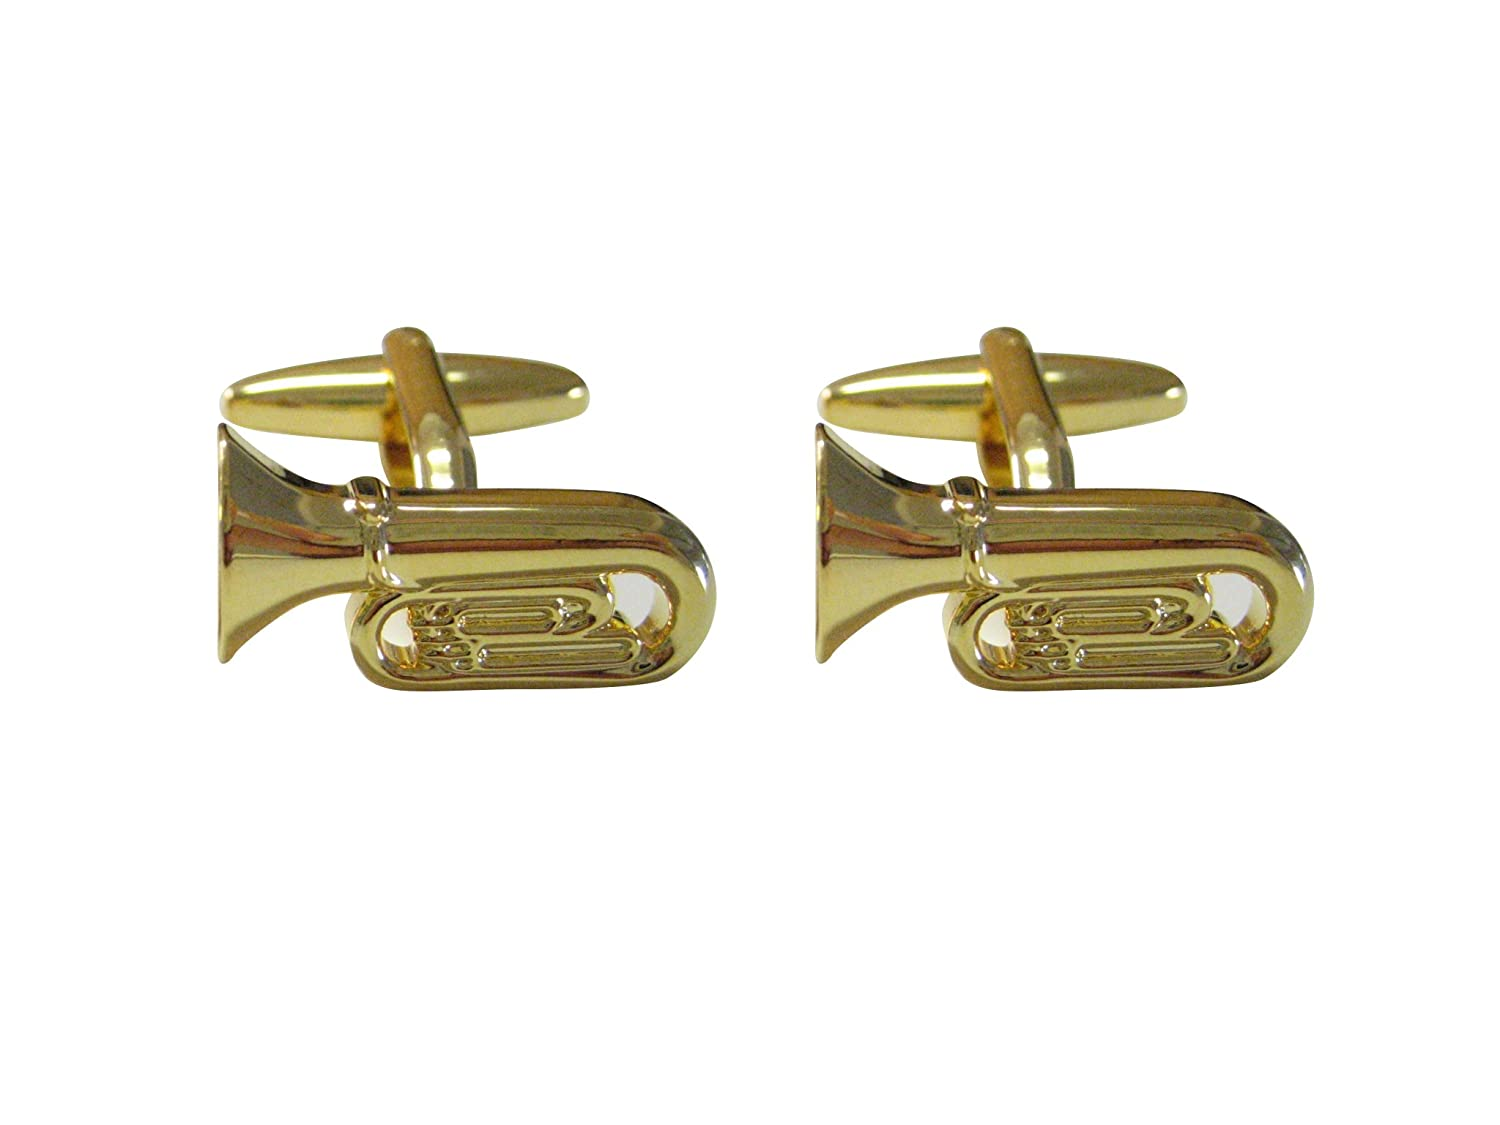 Tuba Musical Instrument Cufflinks UK_B00R3R9PYA